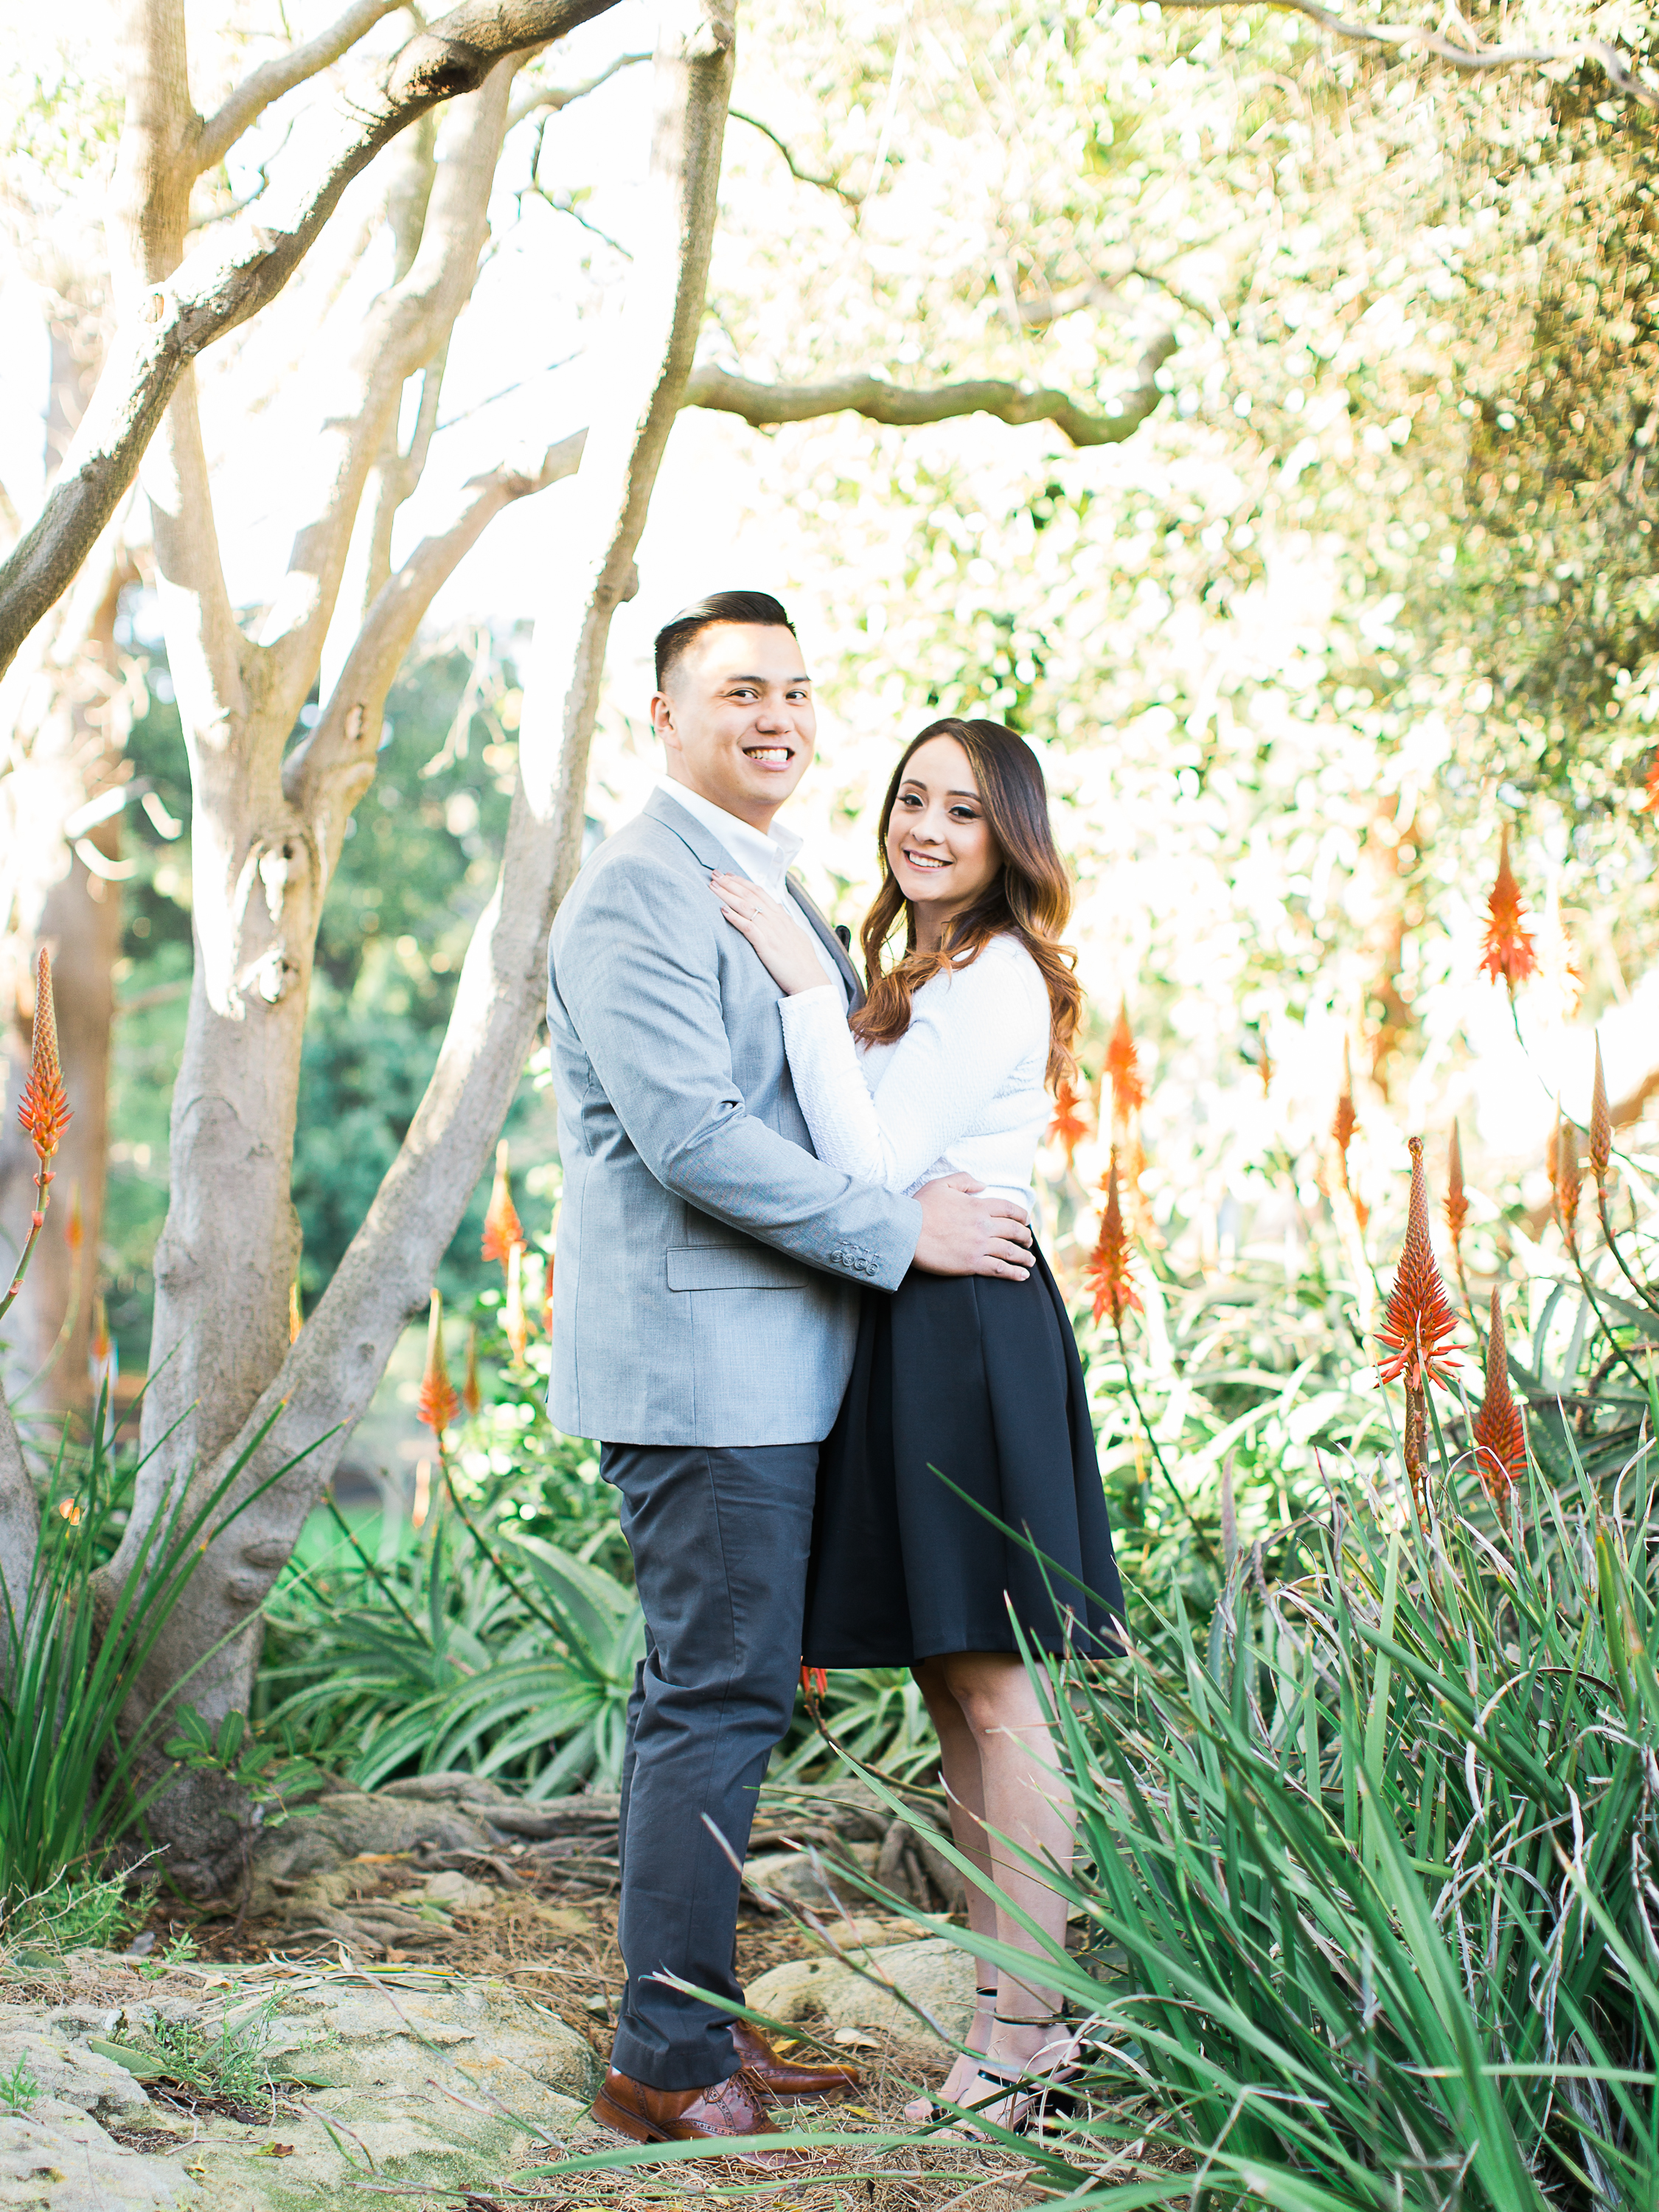 Klint and Yessy Engagement _ Brandon J Ferlin Photography-8.jpg